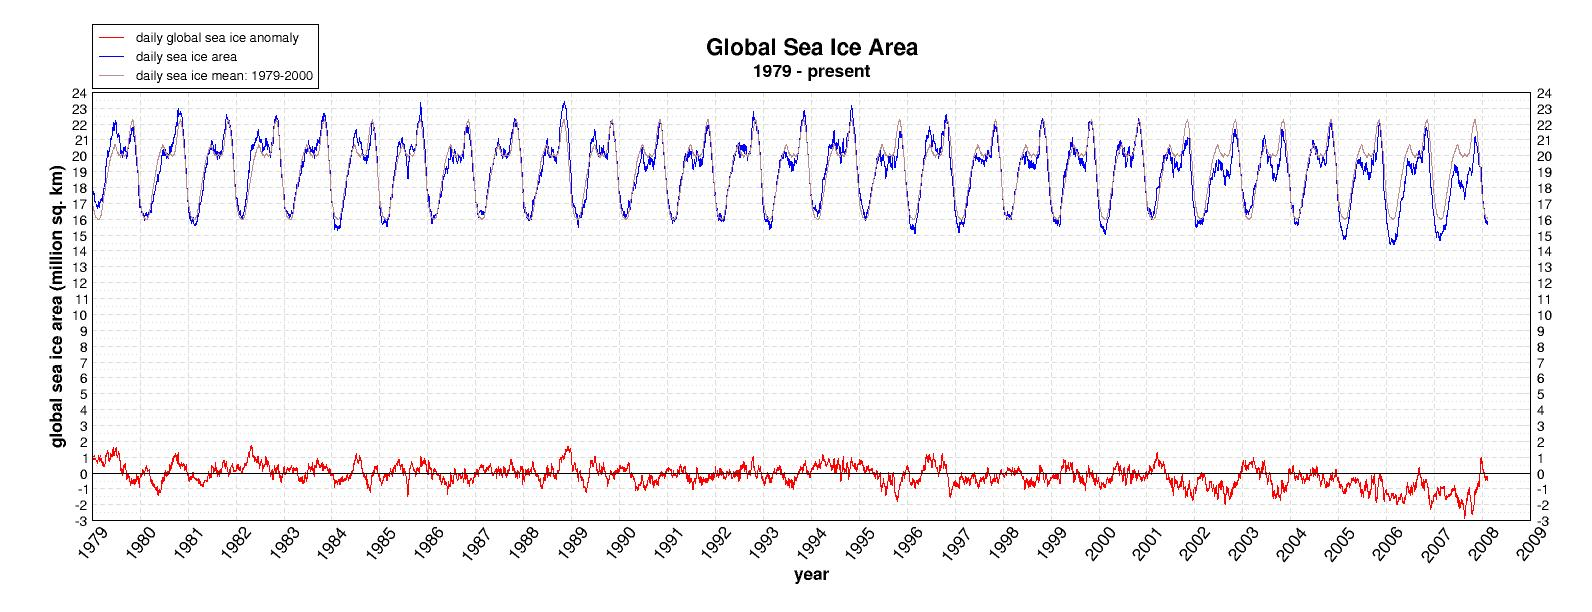 Global Sea Ice Area